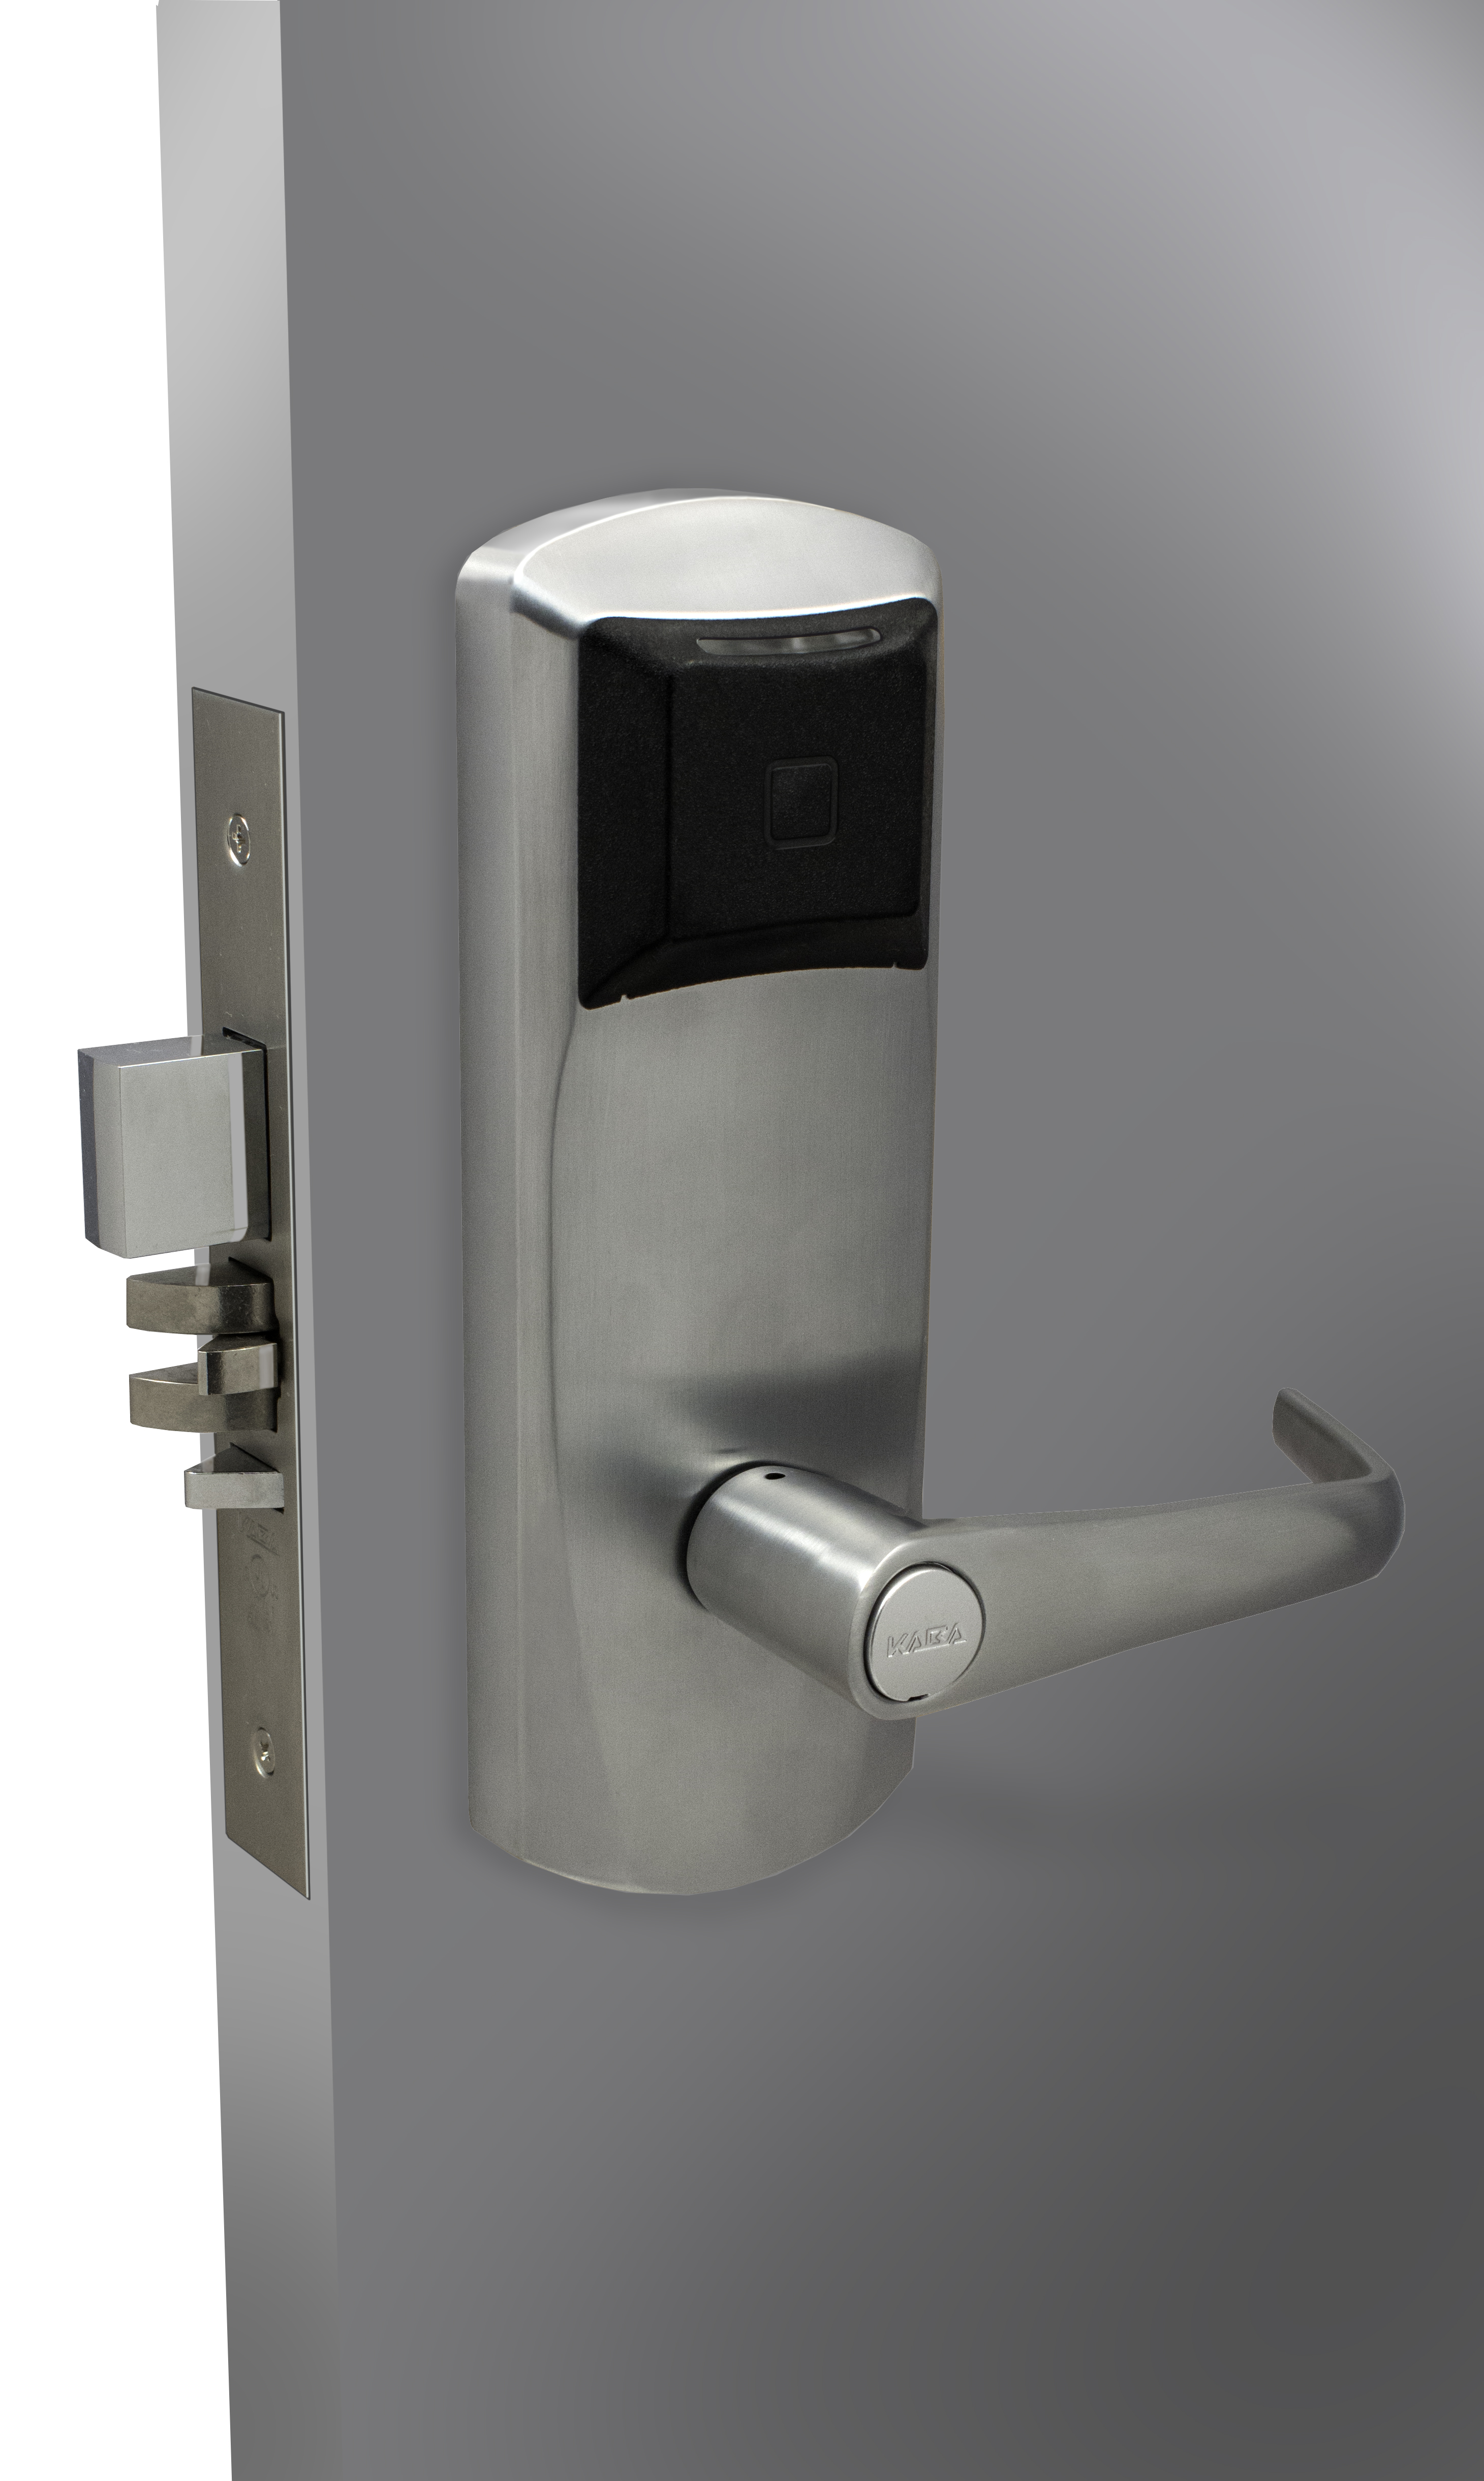 Saflok RT RFID Contactless Lock - Kaba Access & Data Systems